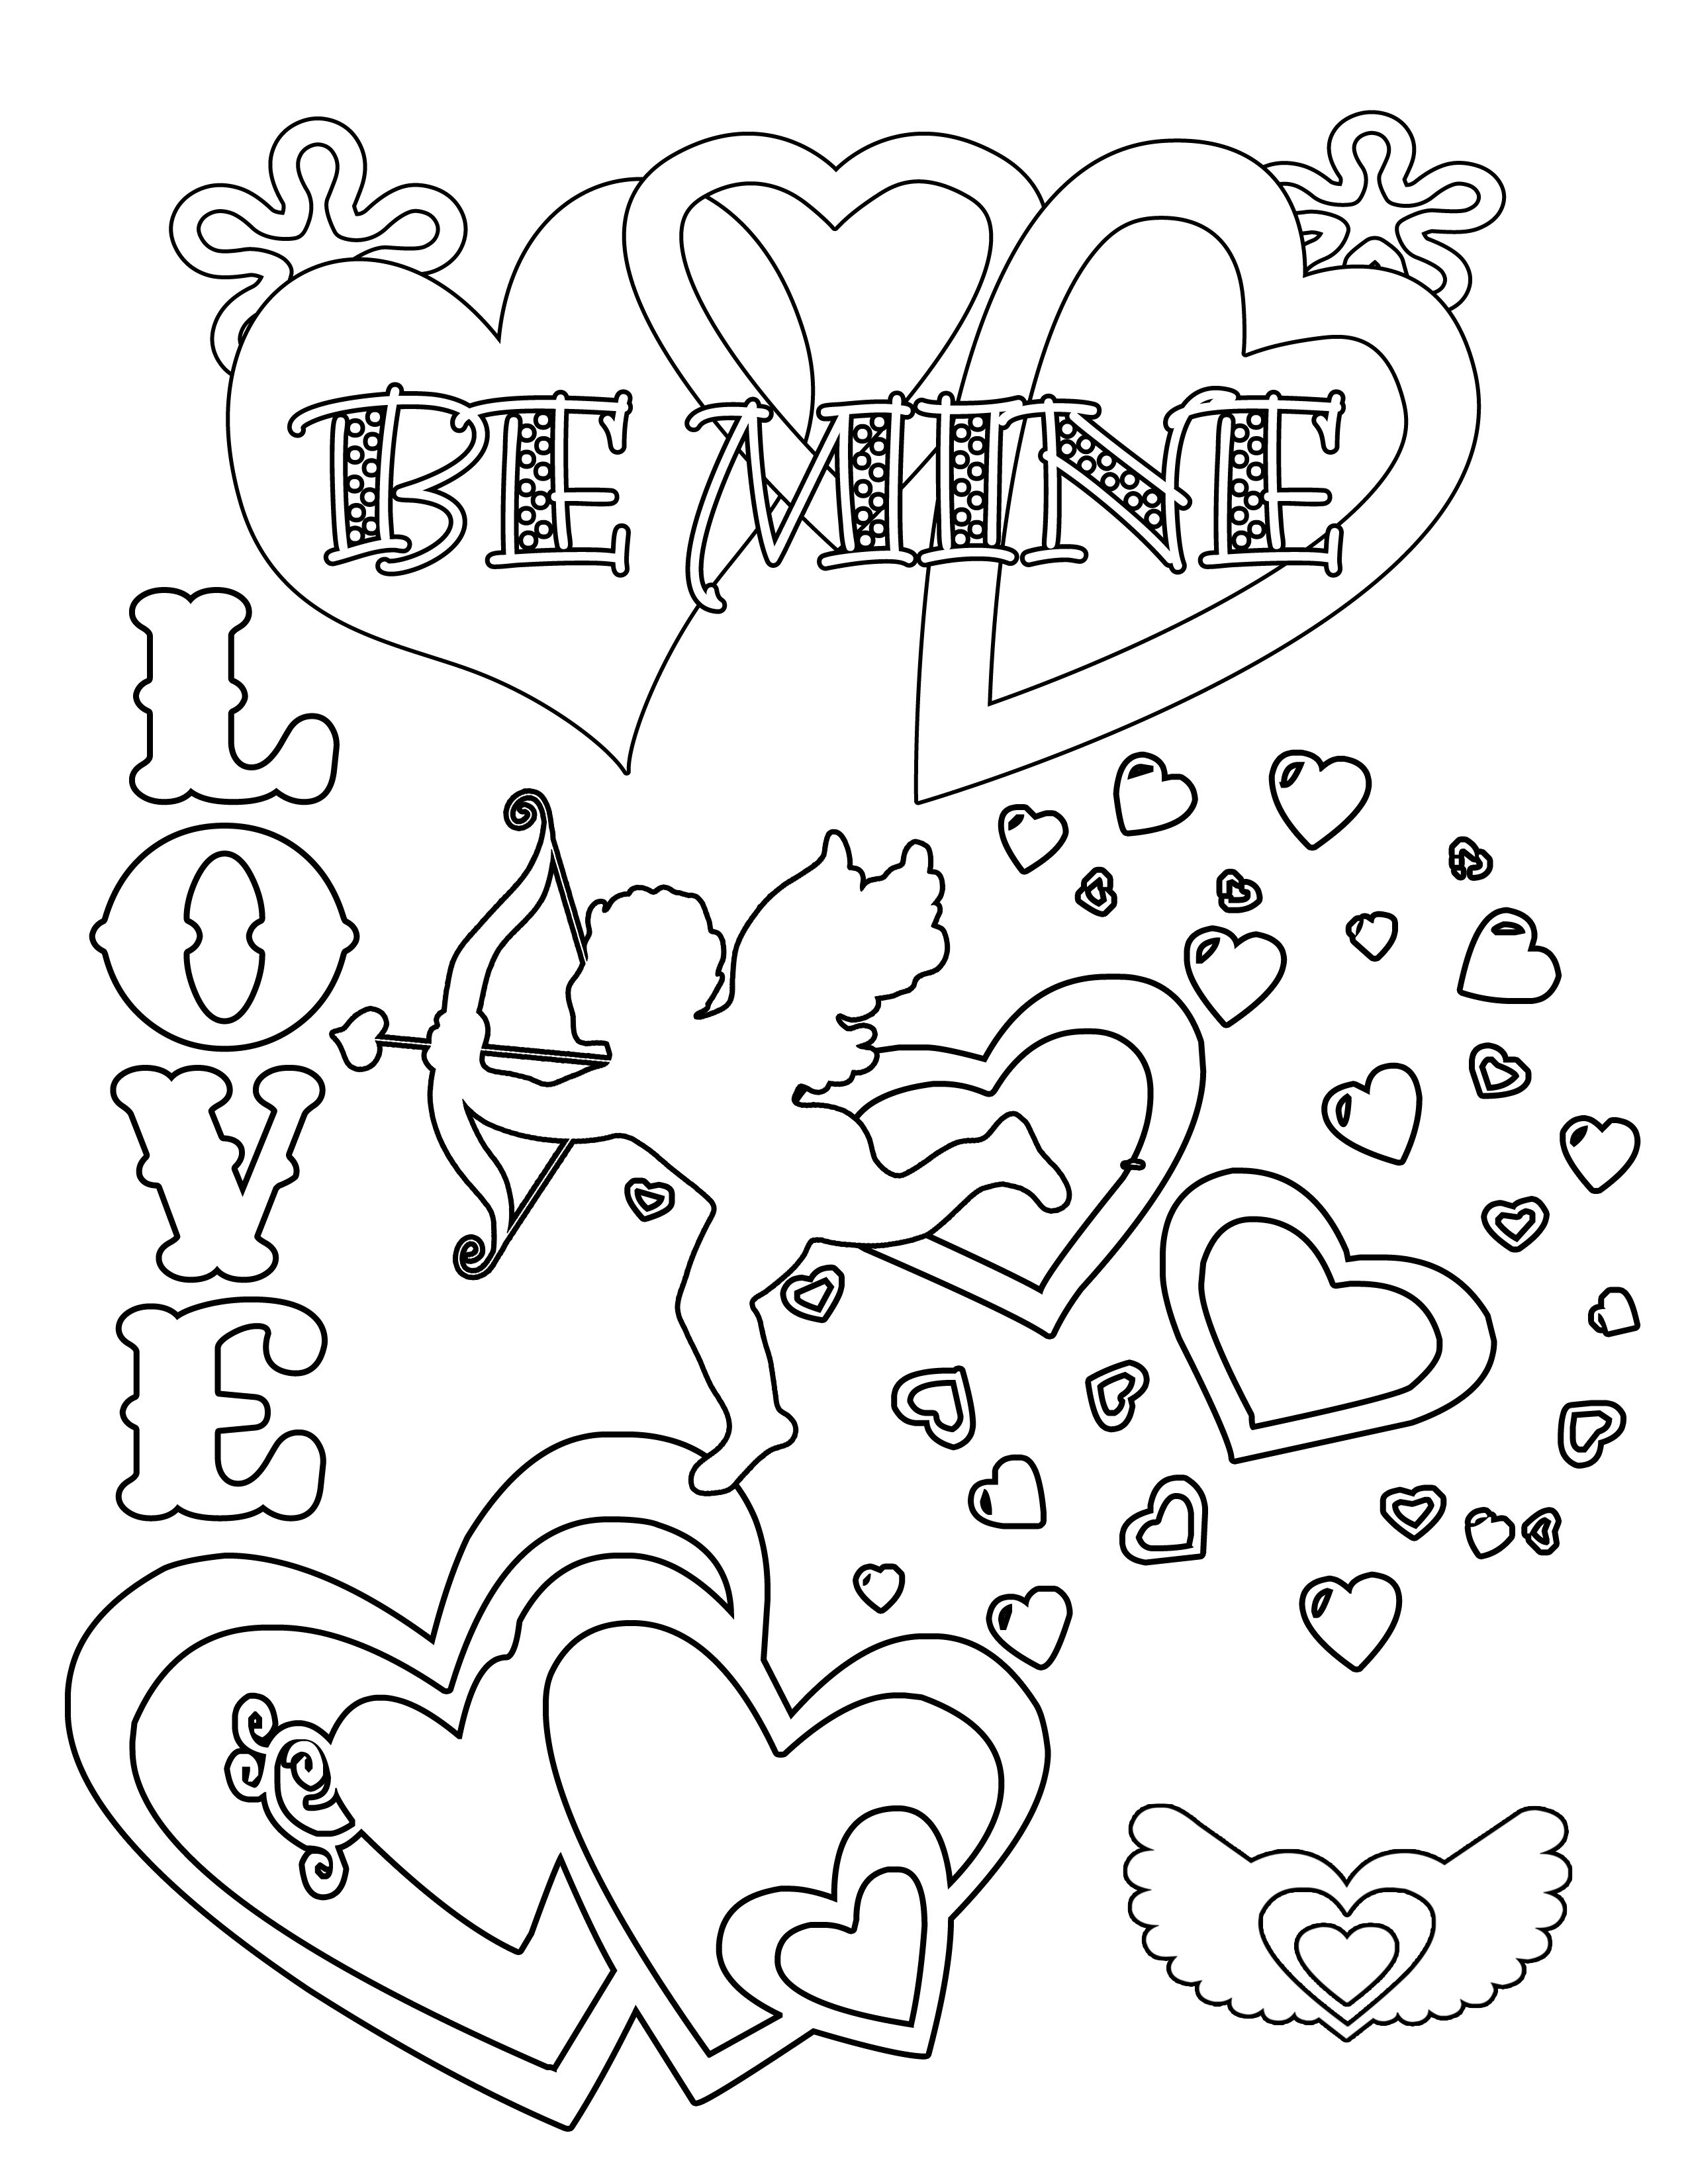 valentines day coloring pages free printable larue county register valentine39s day printable coloring coloring valentines free pages printable day